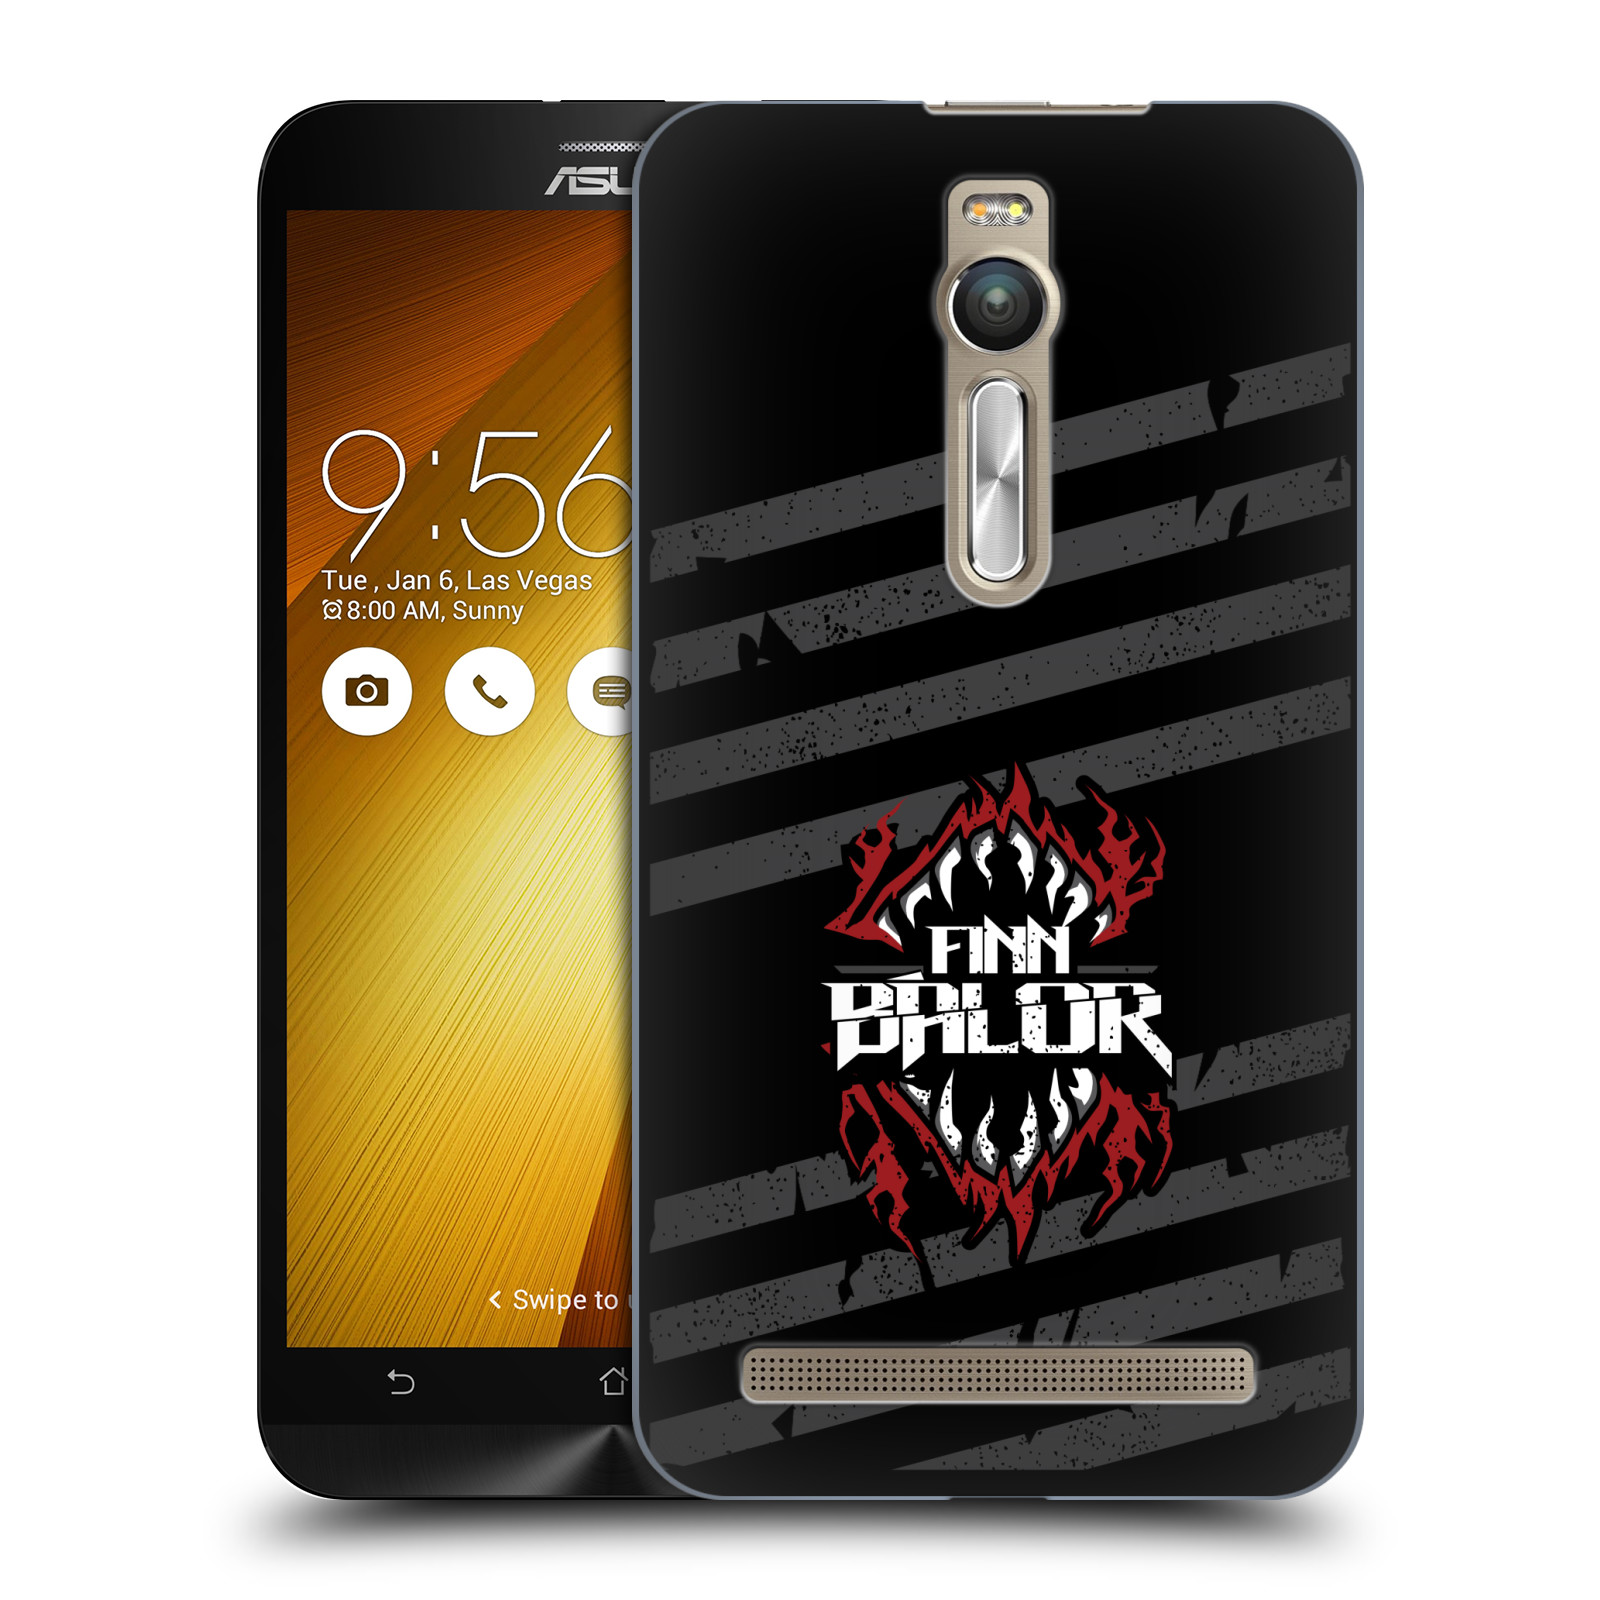 OFFICIAL-WWE-2017-FINN-BALOR-HARD-BACK-CASE-FOR-ONEPLUS-ASUS-AMAZON